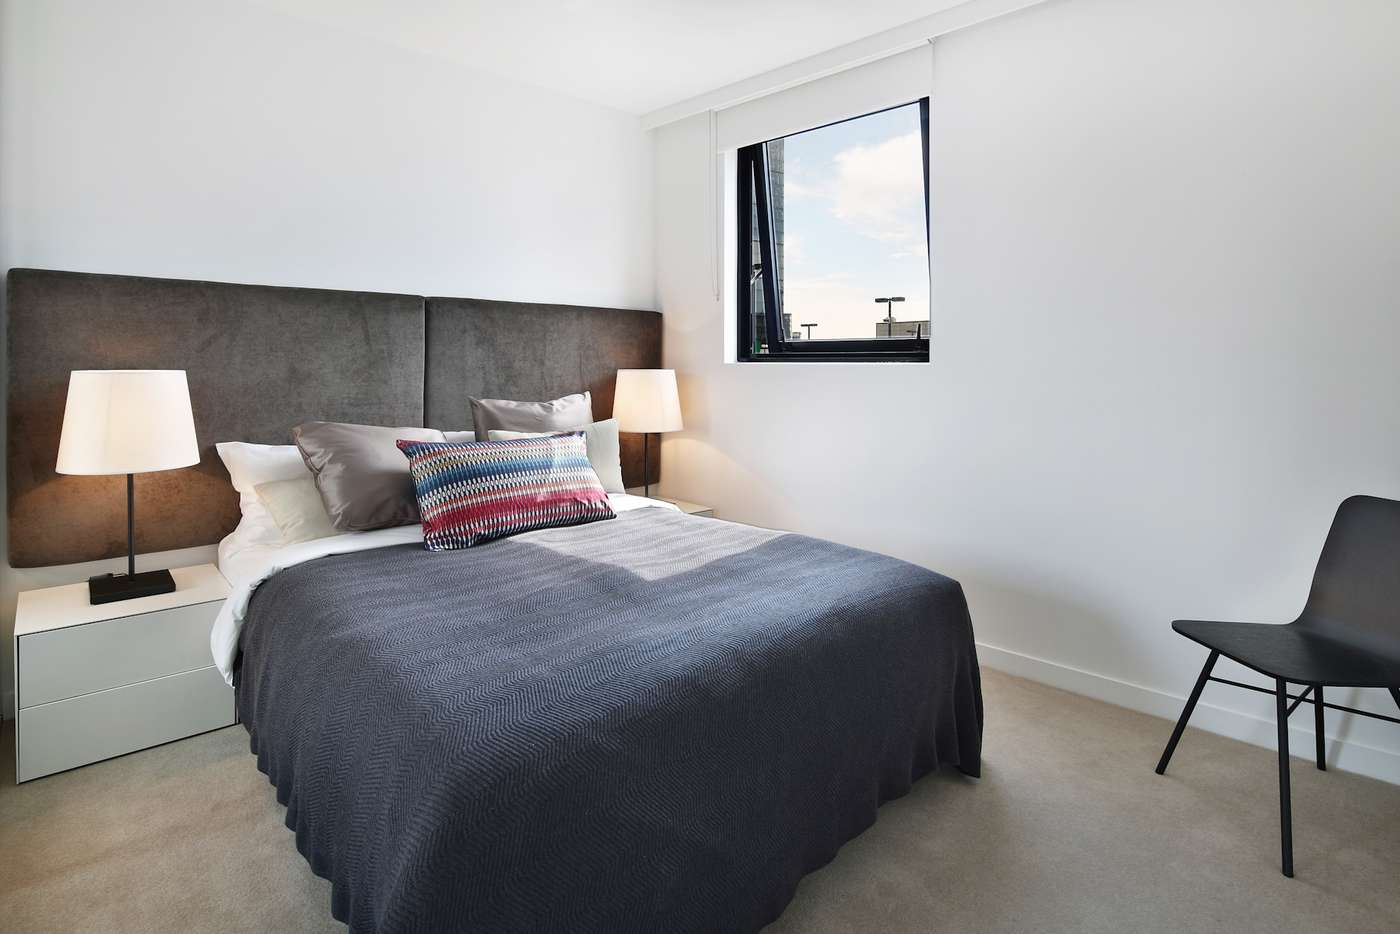 Main view of Homely apartment listing, 2506/250 City Road, Southbank VIC 3006